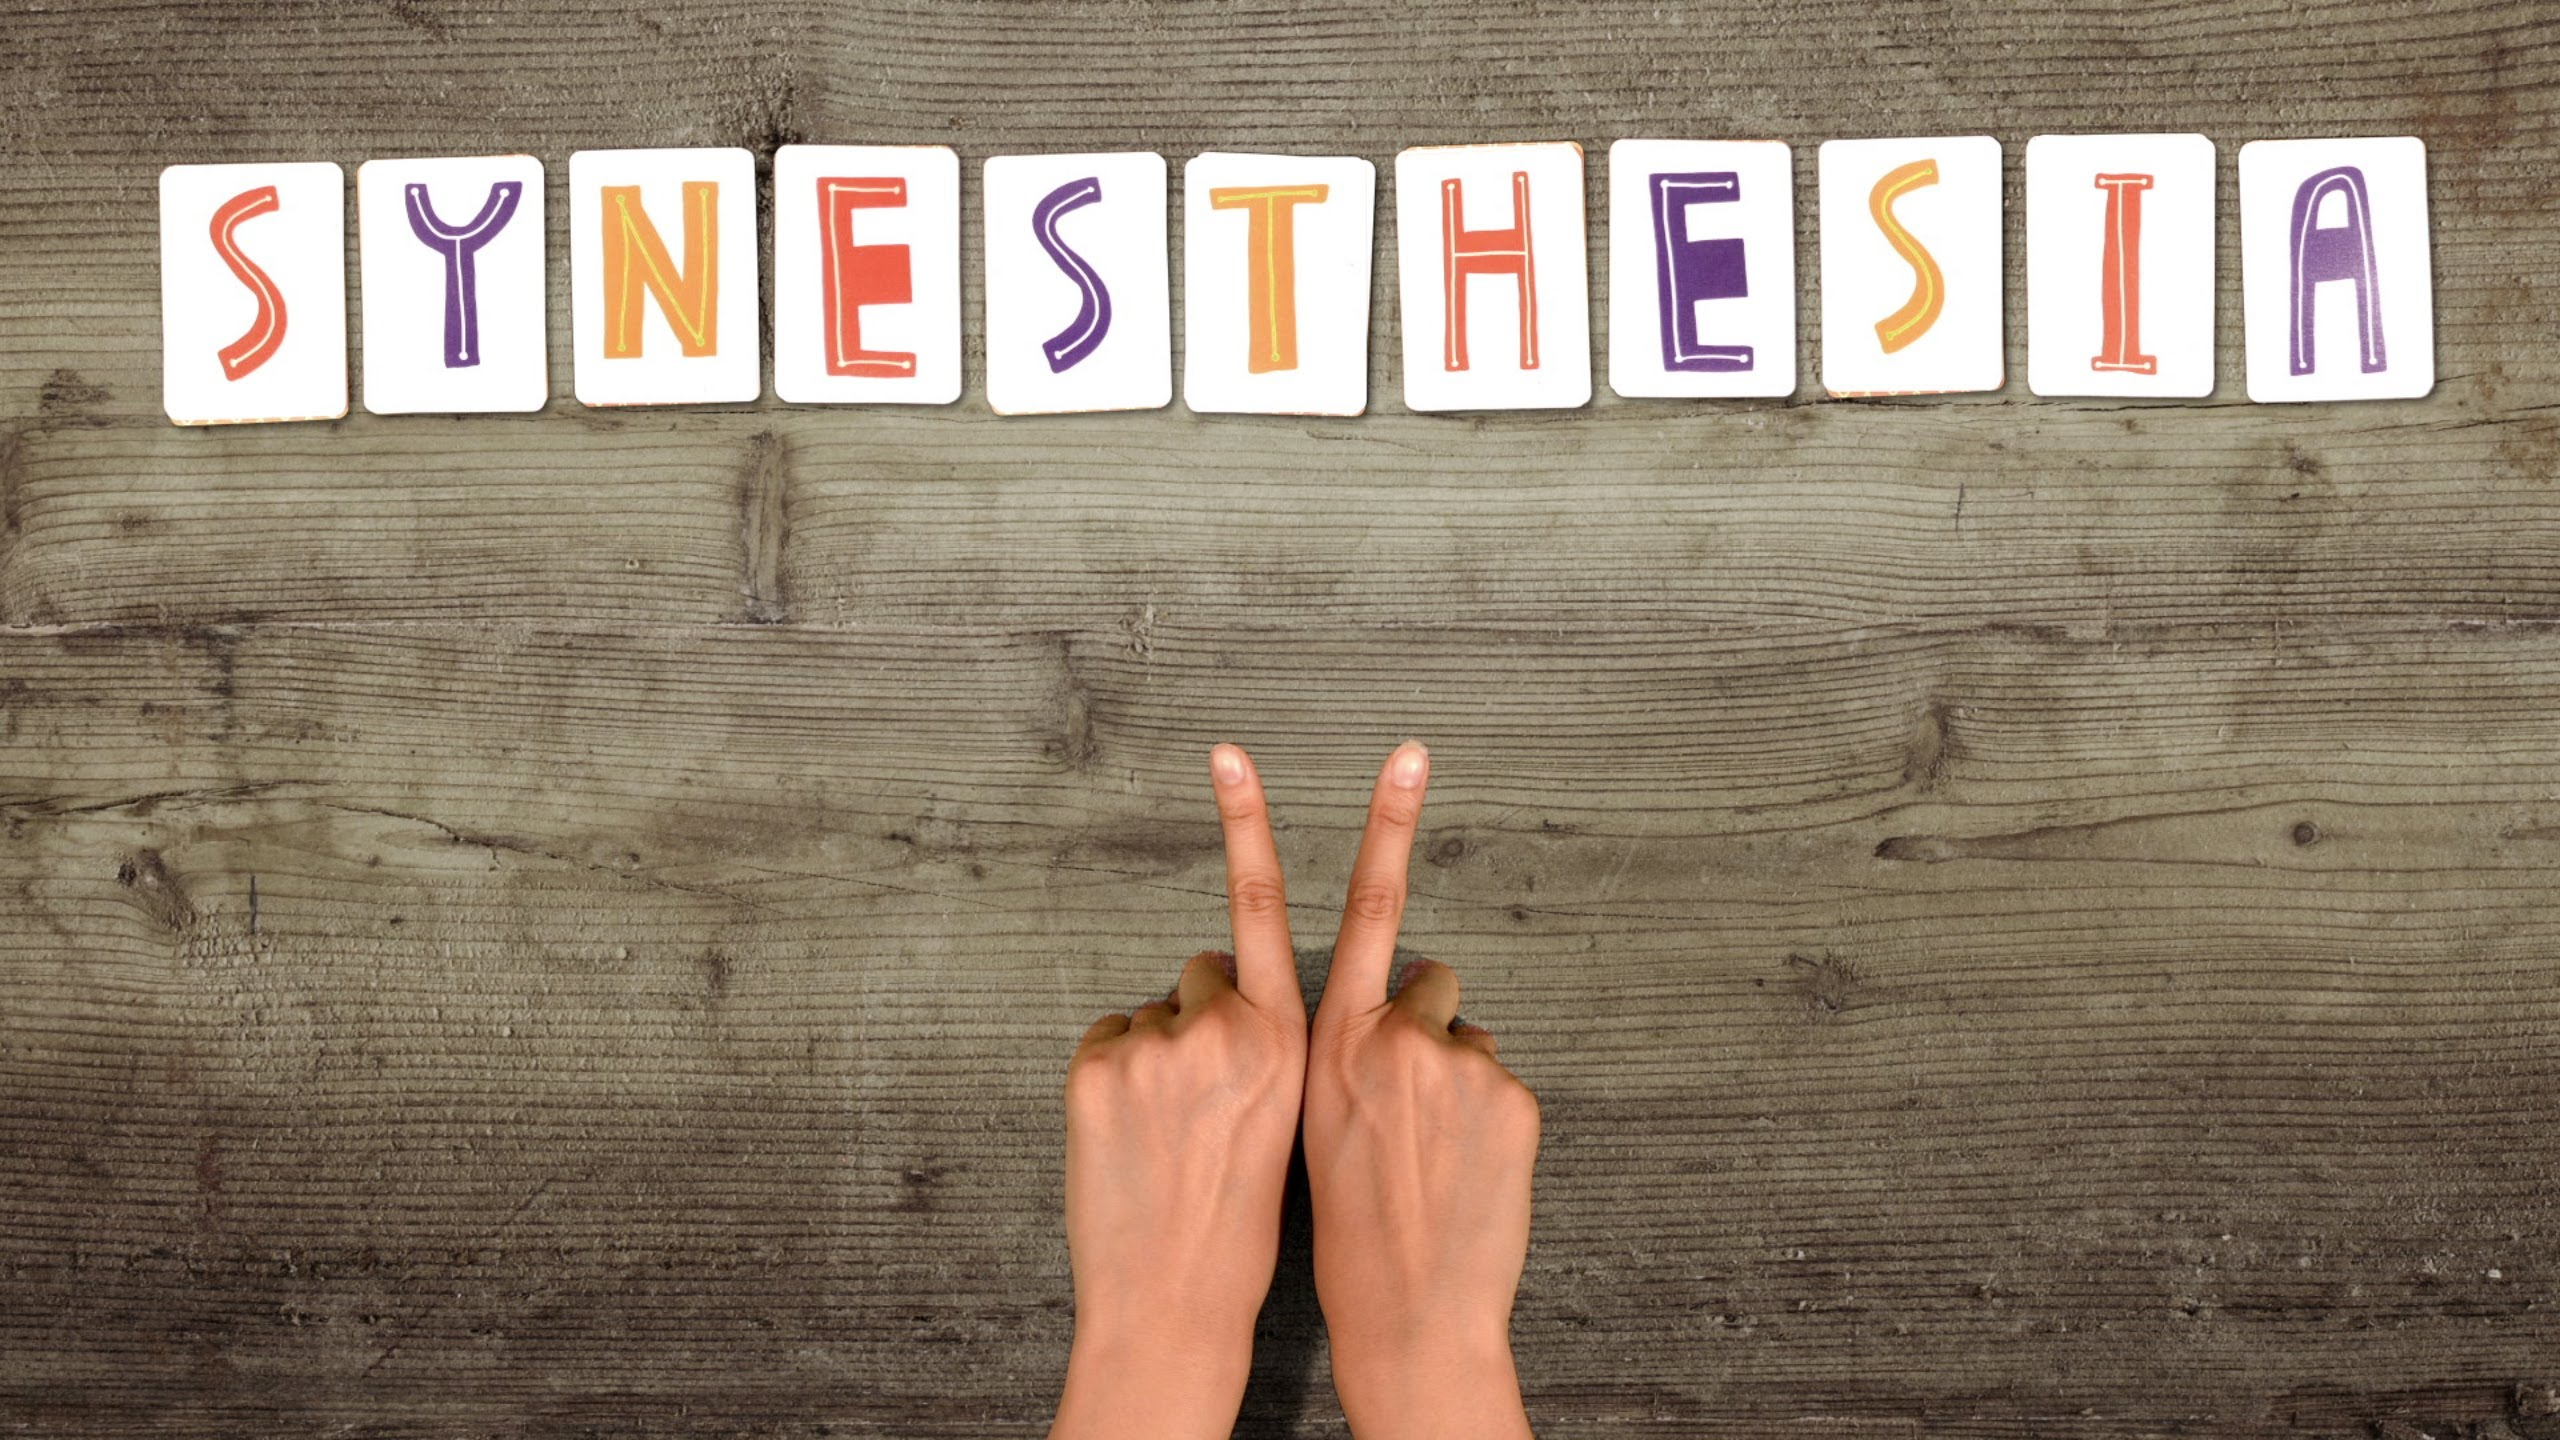 an analysis of synesthesia Synaesthesia has long been of interest to scientists and artists alike in the wider synaesthesia literature section we catalogue publications on synaesthesia on this page are some of our publications.